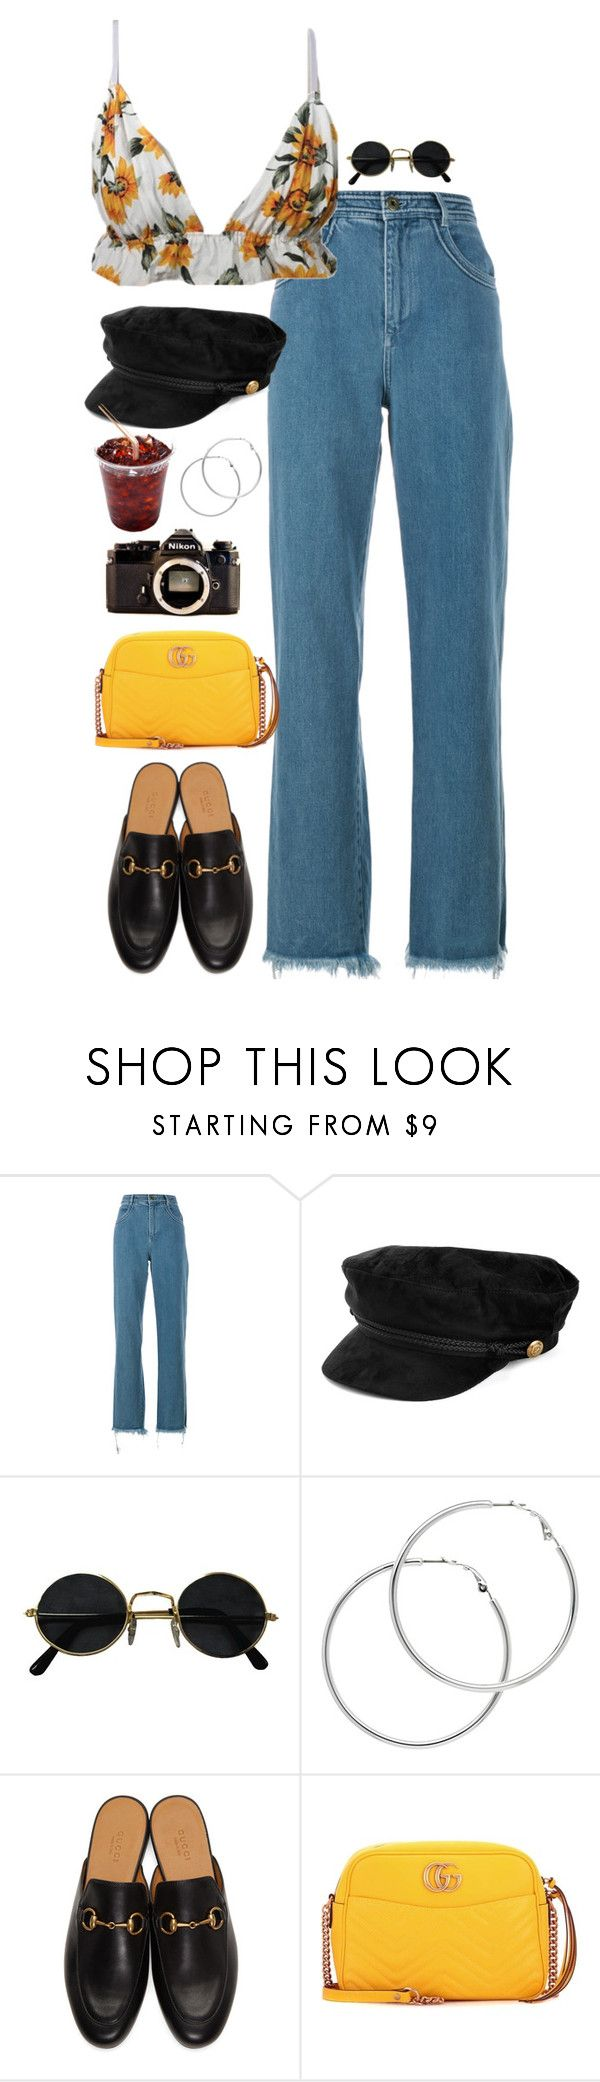 """""""but i keep on coming back to you"""" by stylesxgucci ❤ liked on Polyvore featuring Chloé, Melissa Odabash, Gucci and Nikon"""